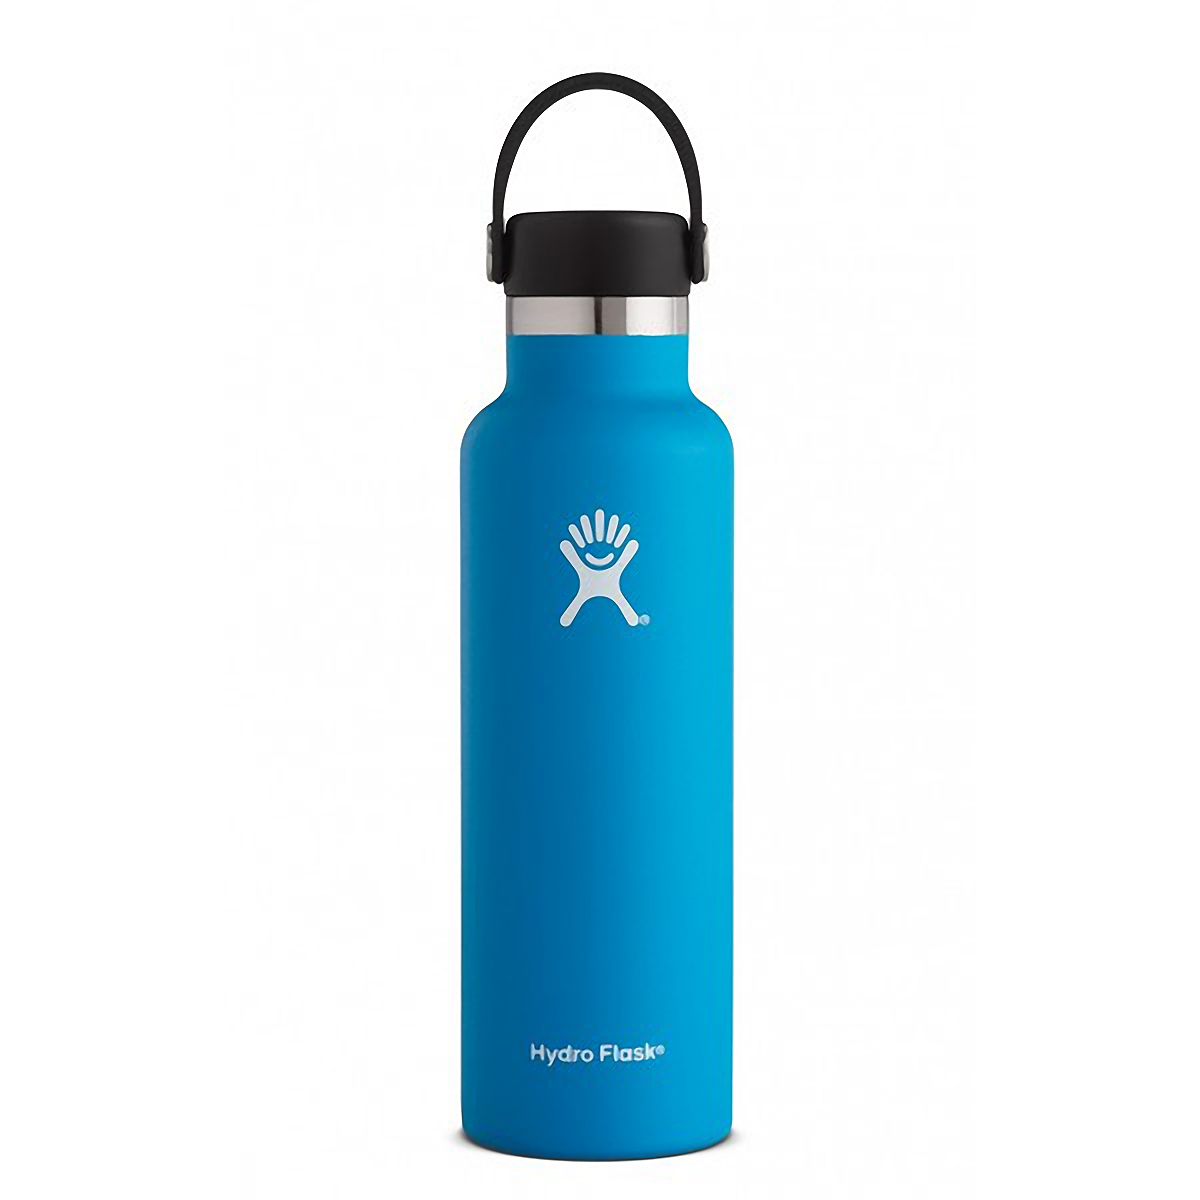 Hydro Flask 21 oz Standard Mouth Bottle - Color: Pacific Size: One Size, Blue, large, image 1